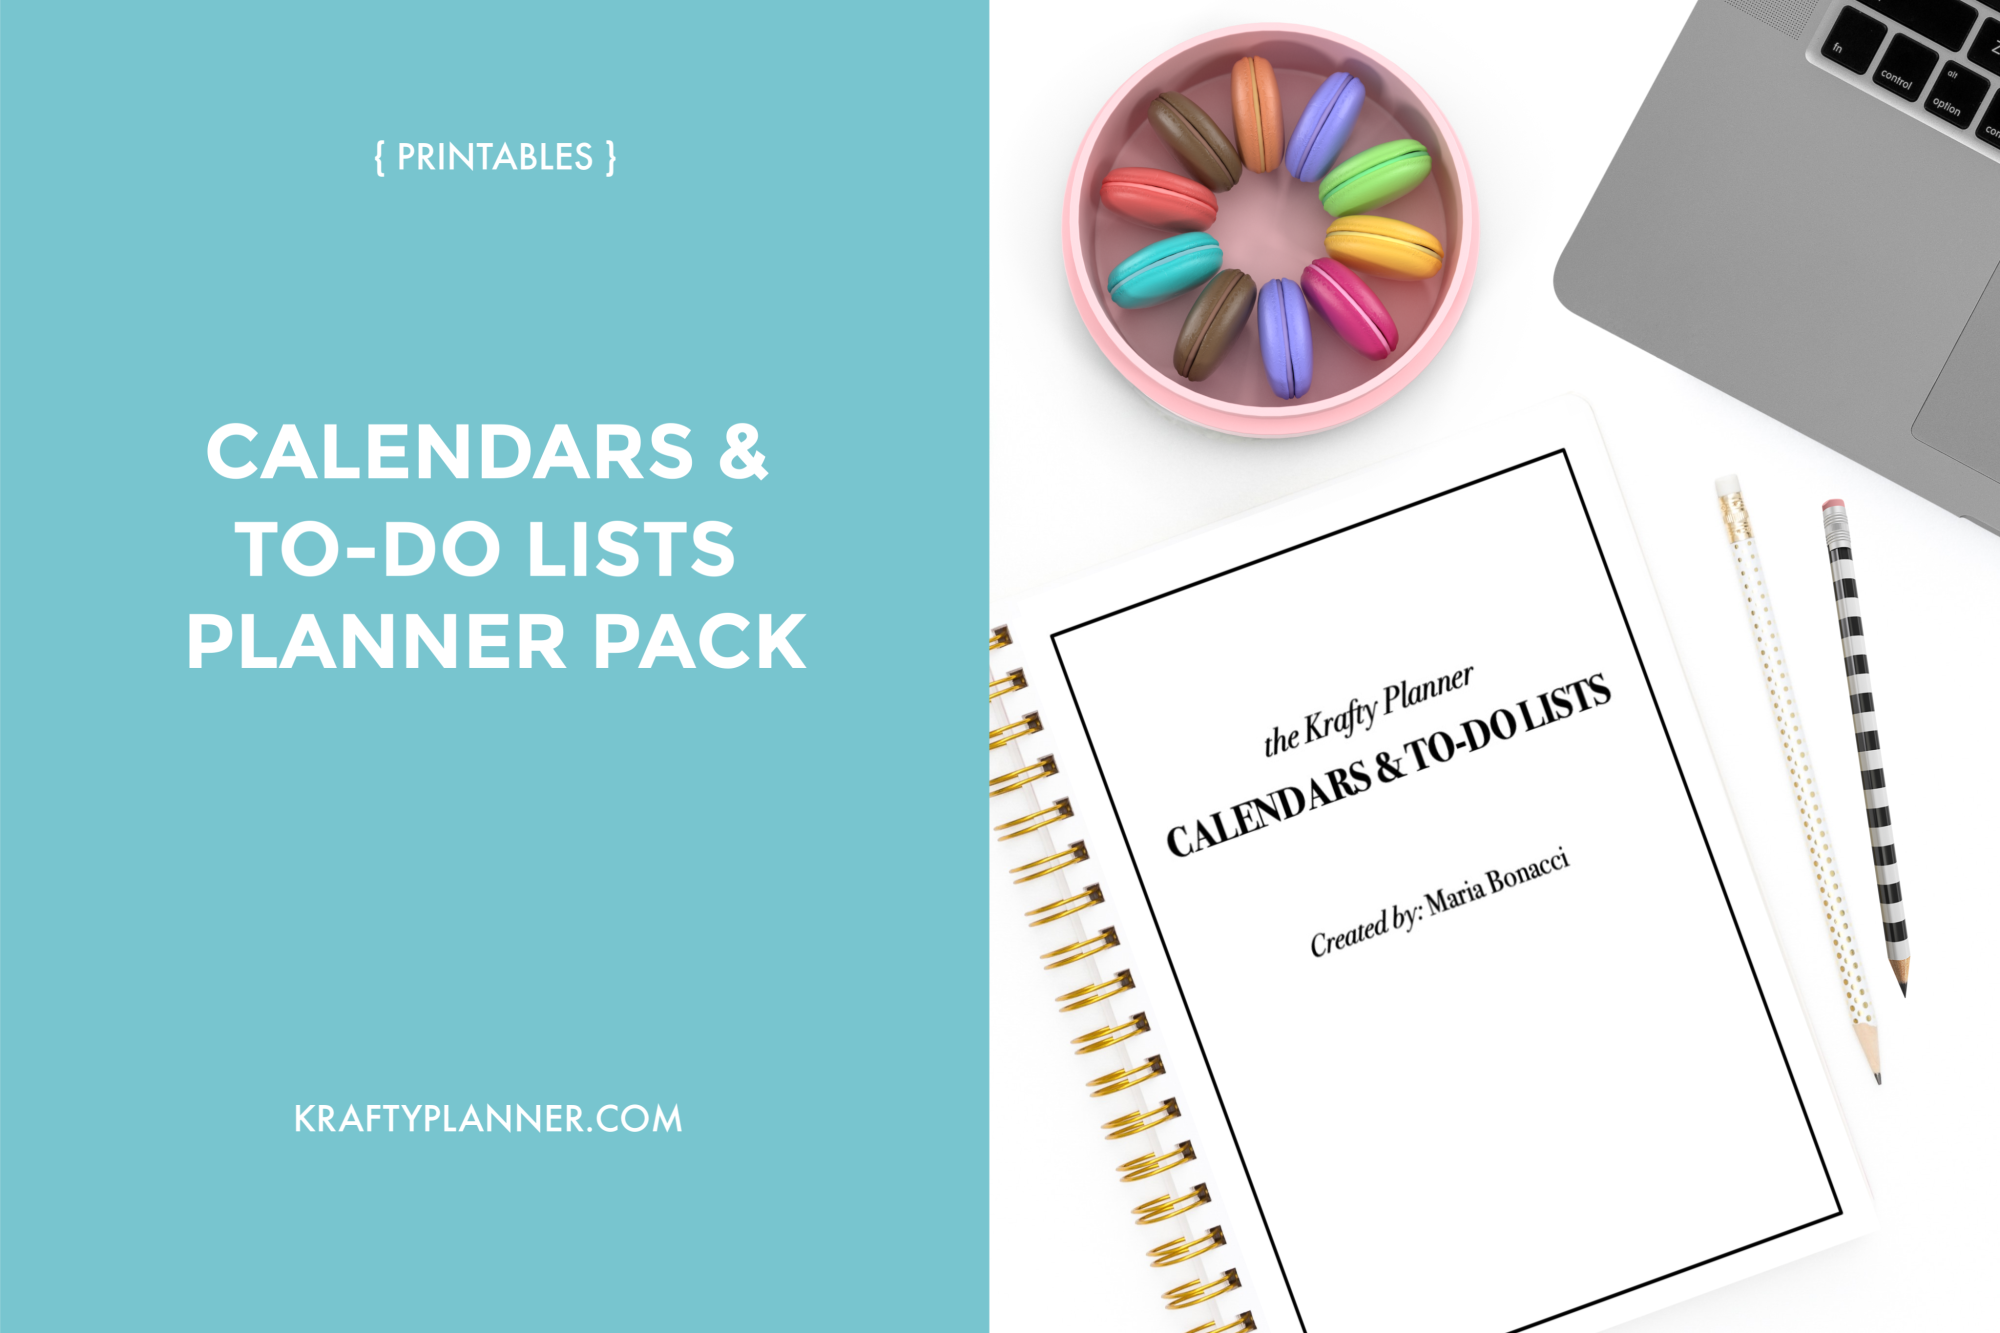 Calendars & to-do lists planner pack.png